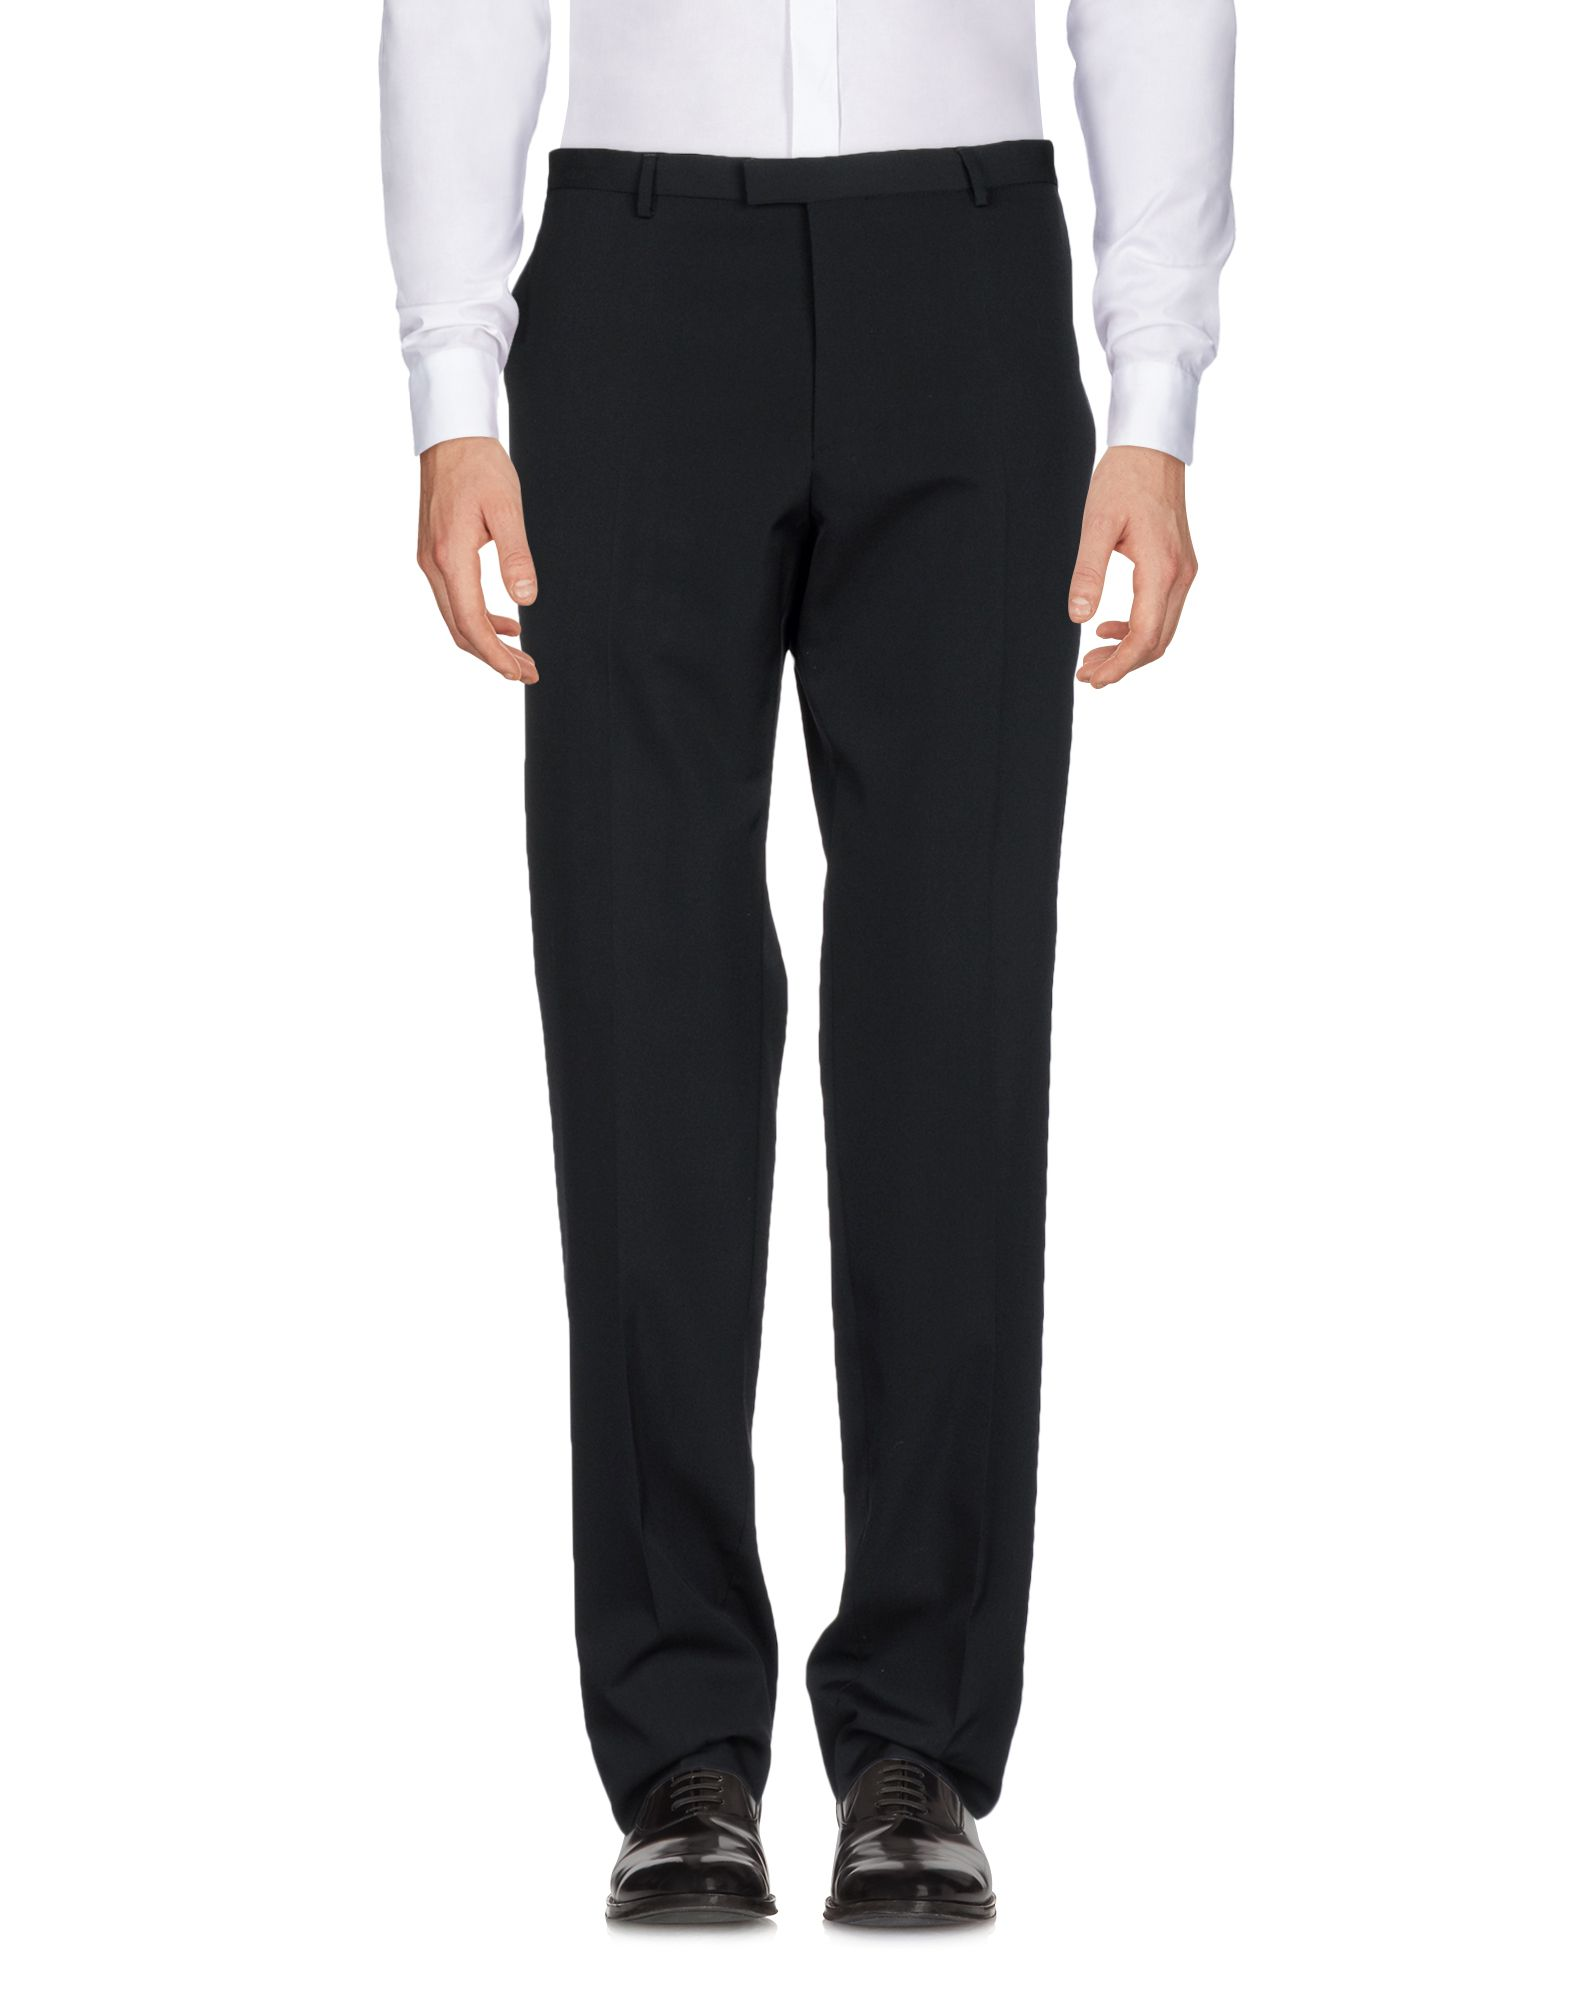 Pantalone Boss Black Uomo - Acquista online su